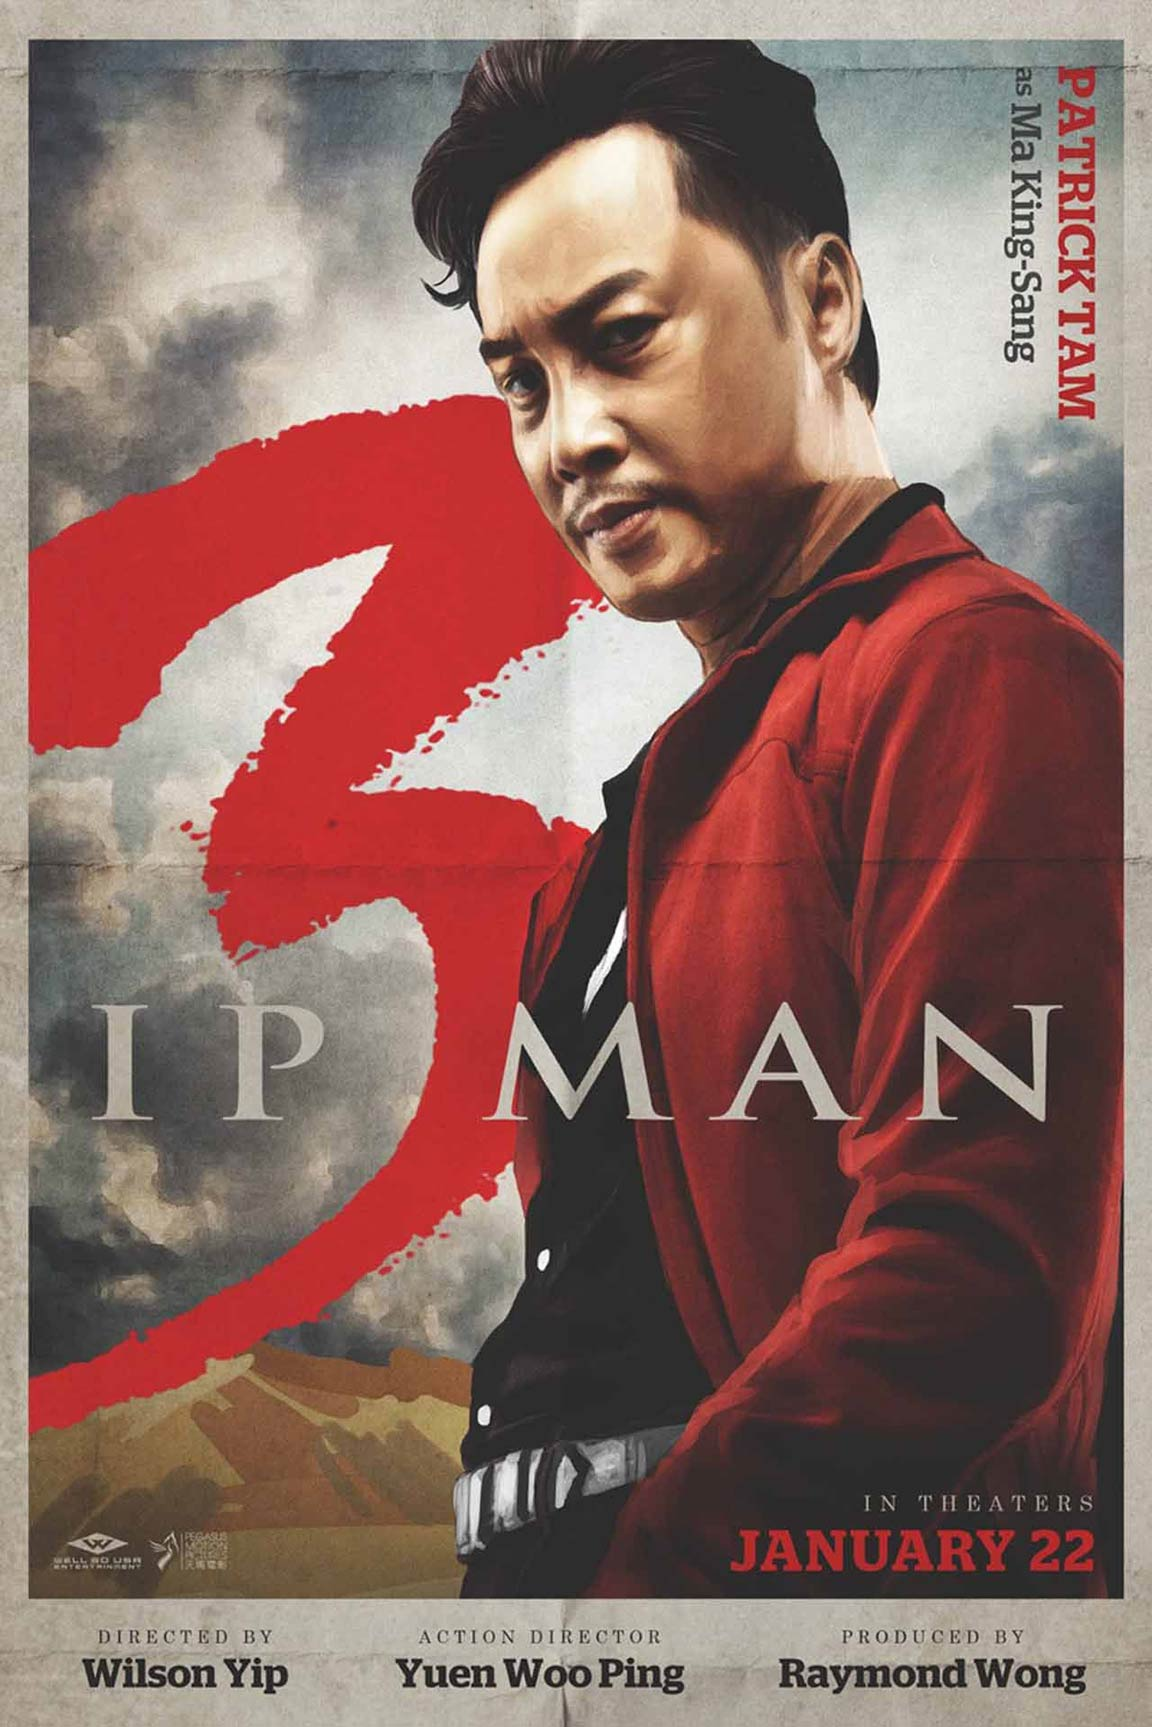 Ip Man 3 (2016) Posters - TrailerAddict